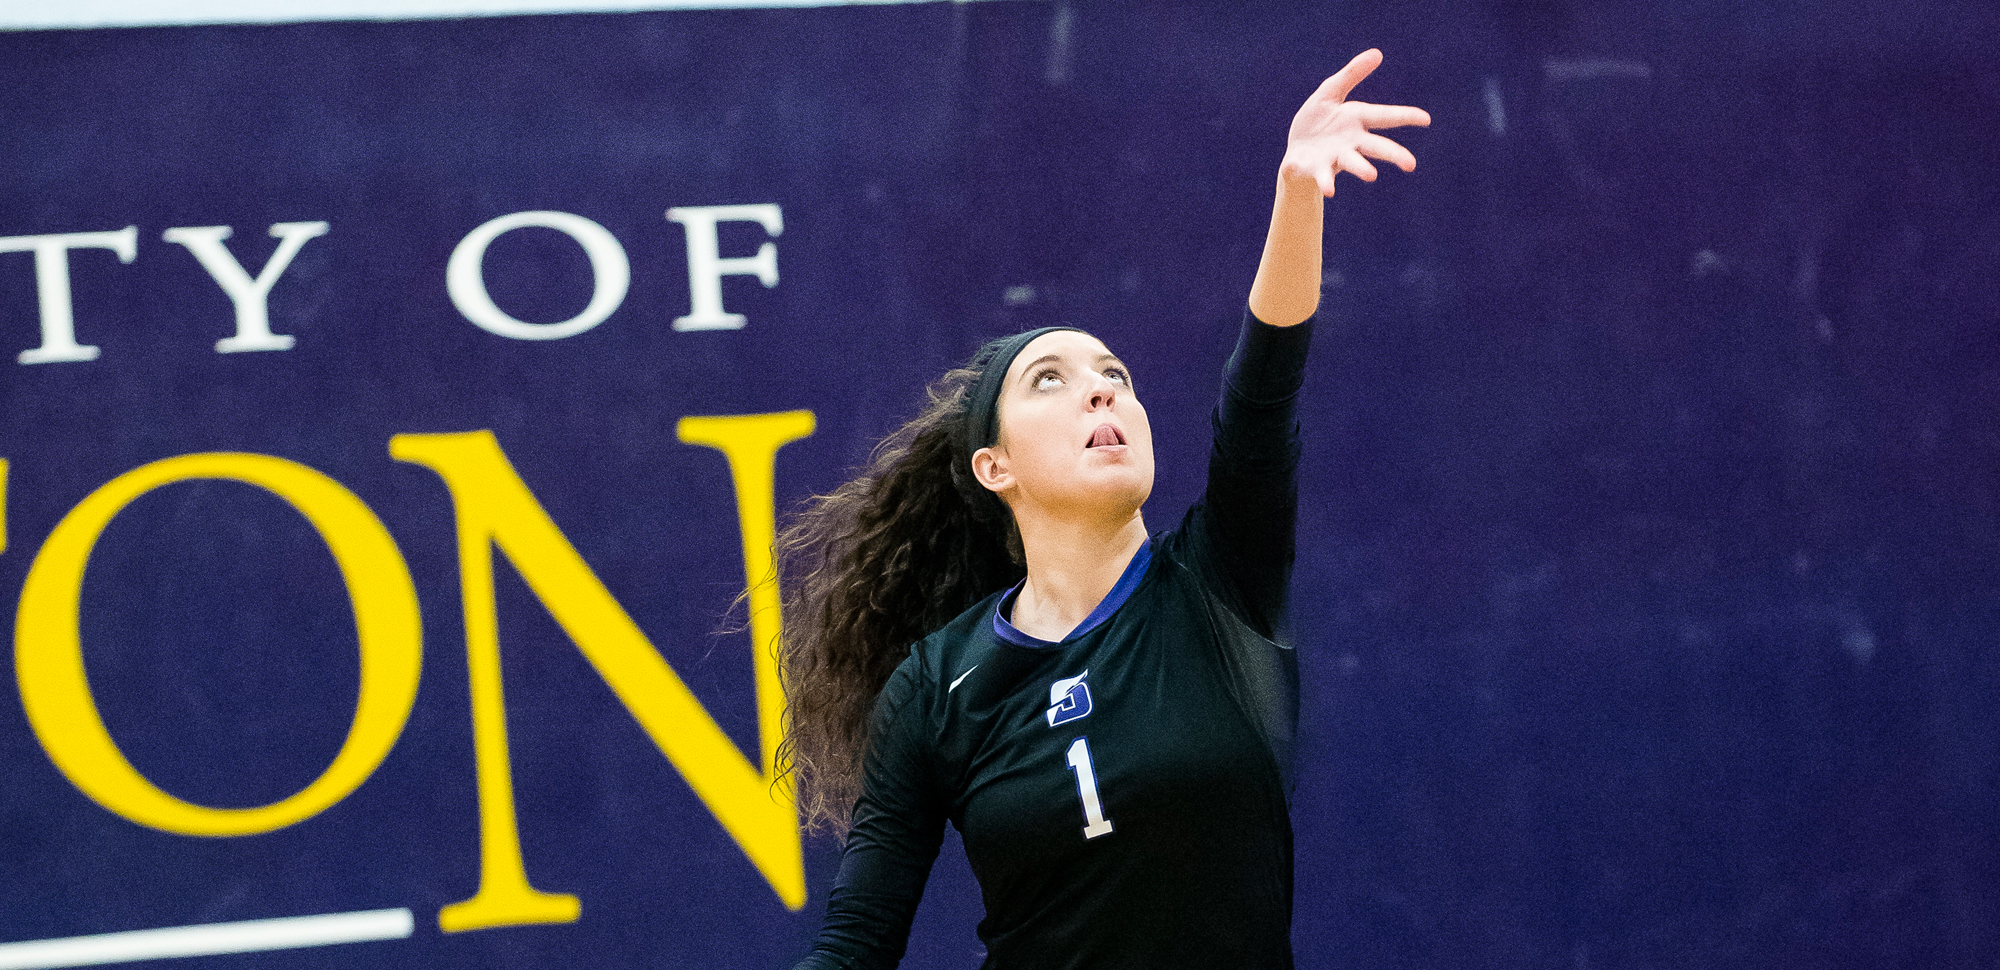 Junior Megan Monastra matched a team-high with 10 kills, as the University of Scranton volleyball team roared back from a 2-1 deficit at Dickinson on Wednesday night, taking a 3-2 win on the road.